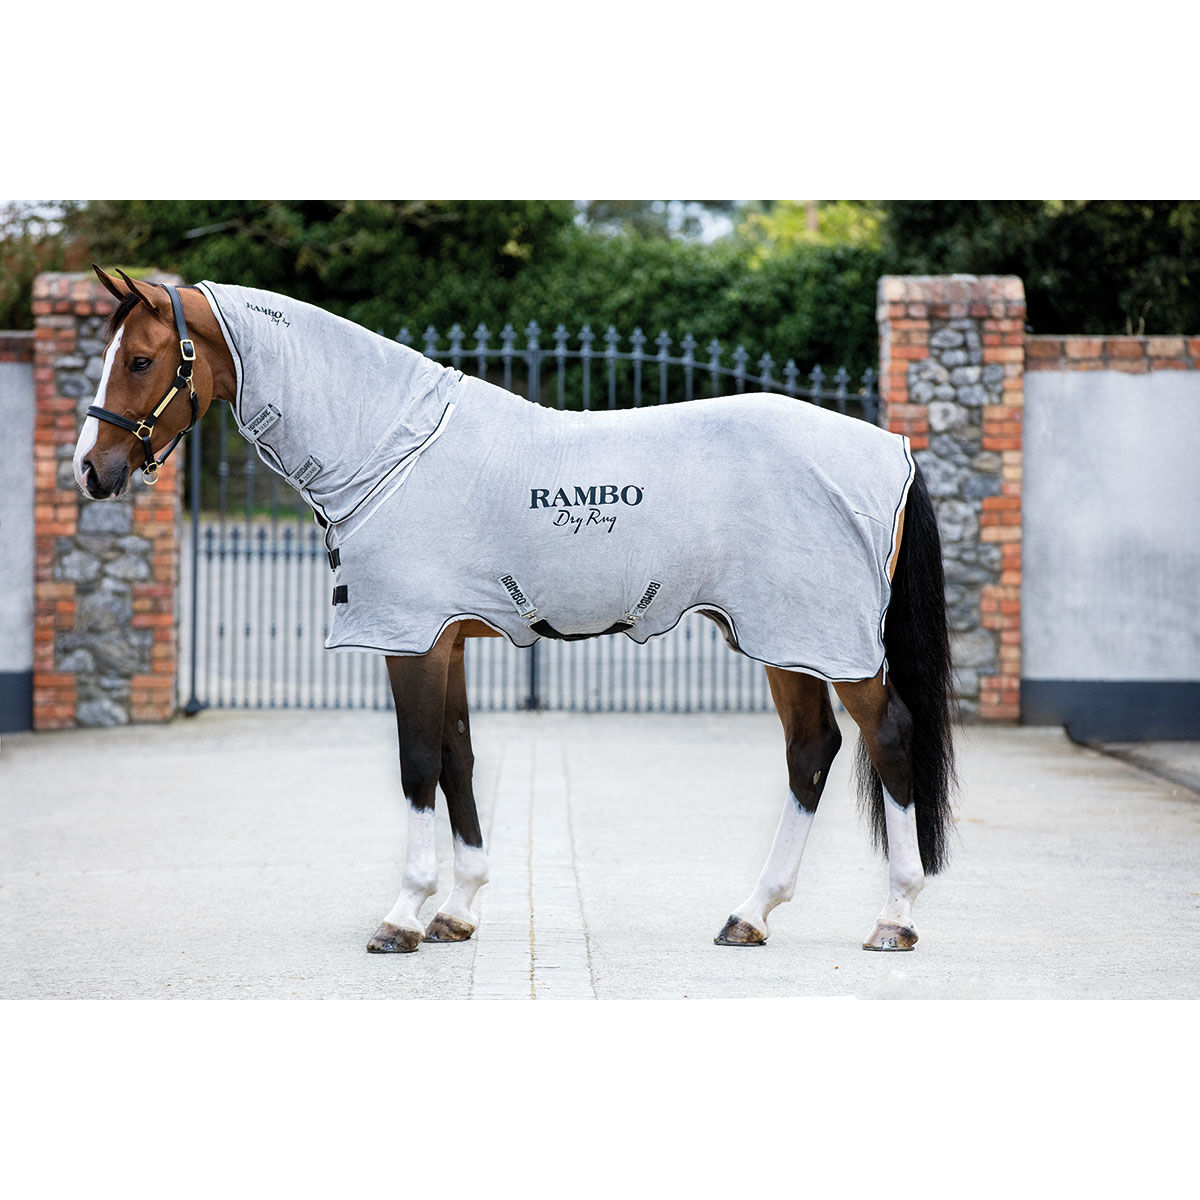 L Pro West Brand Tattini Riding